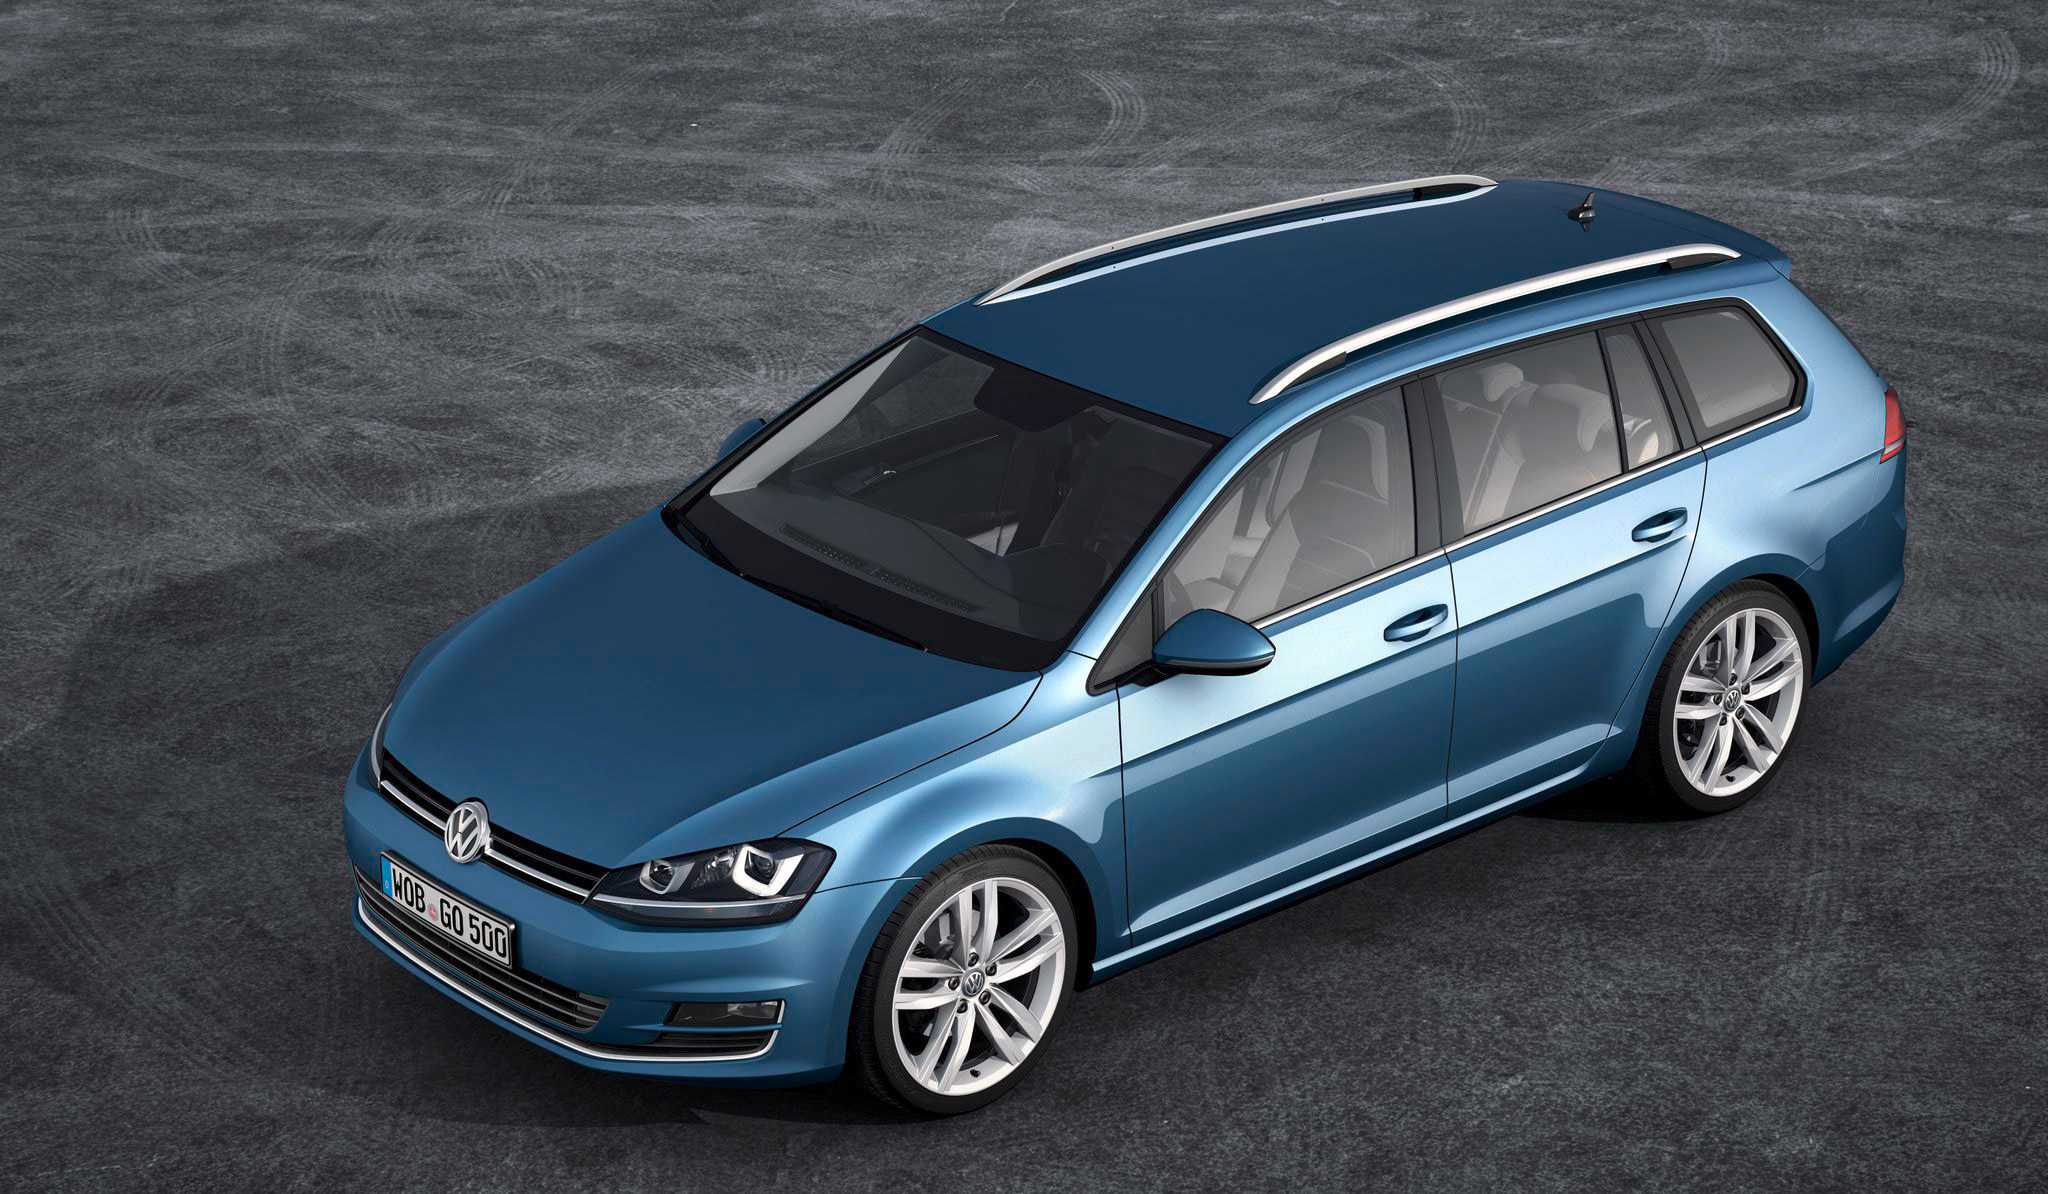 volkswagen golf wagon 009 960x480